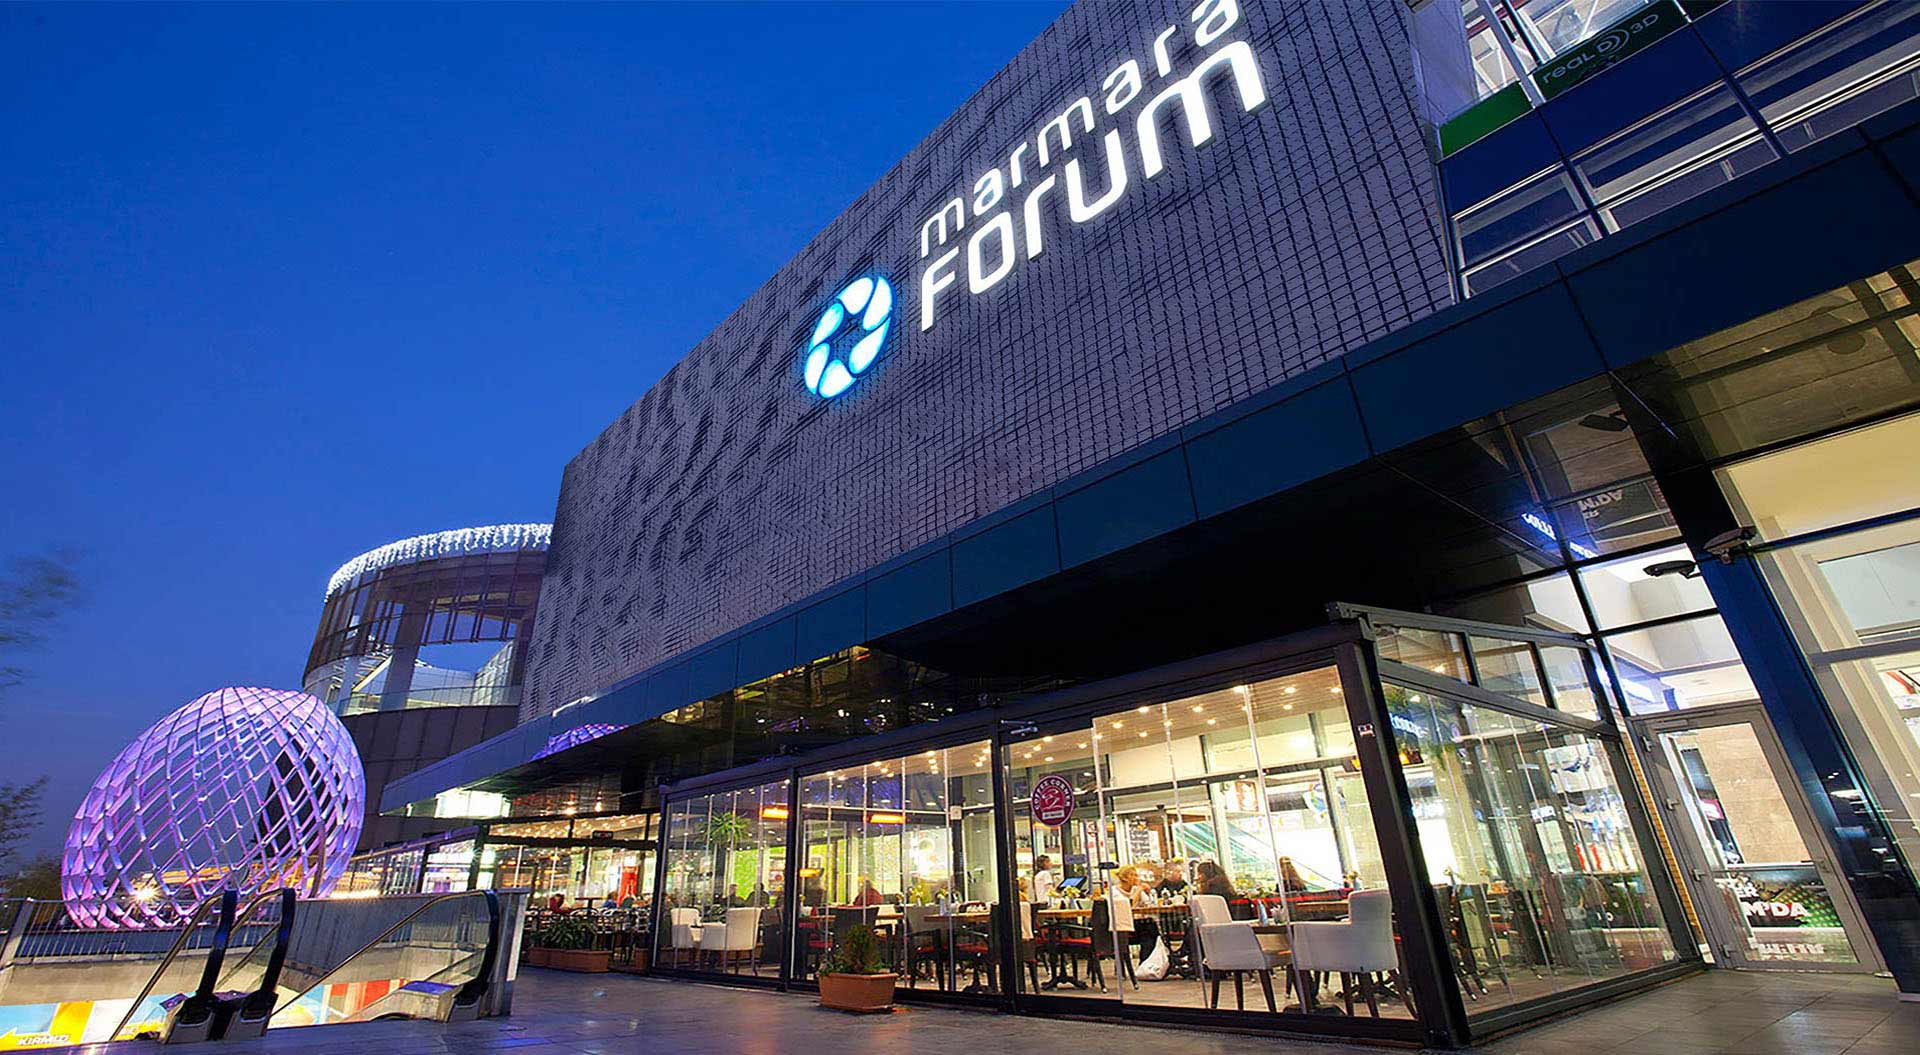 Shopping mall architecture, branding, format planning, interior design, way-finding restaurants, fashion stores, leisure and entertainment facilities - Marmara Forum Istanbul